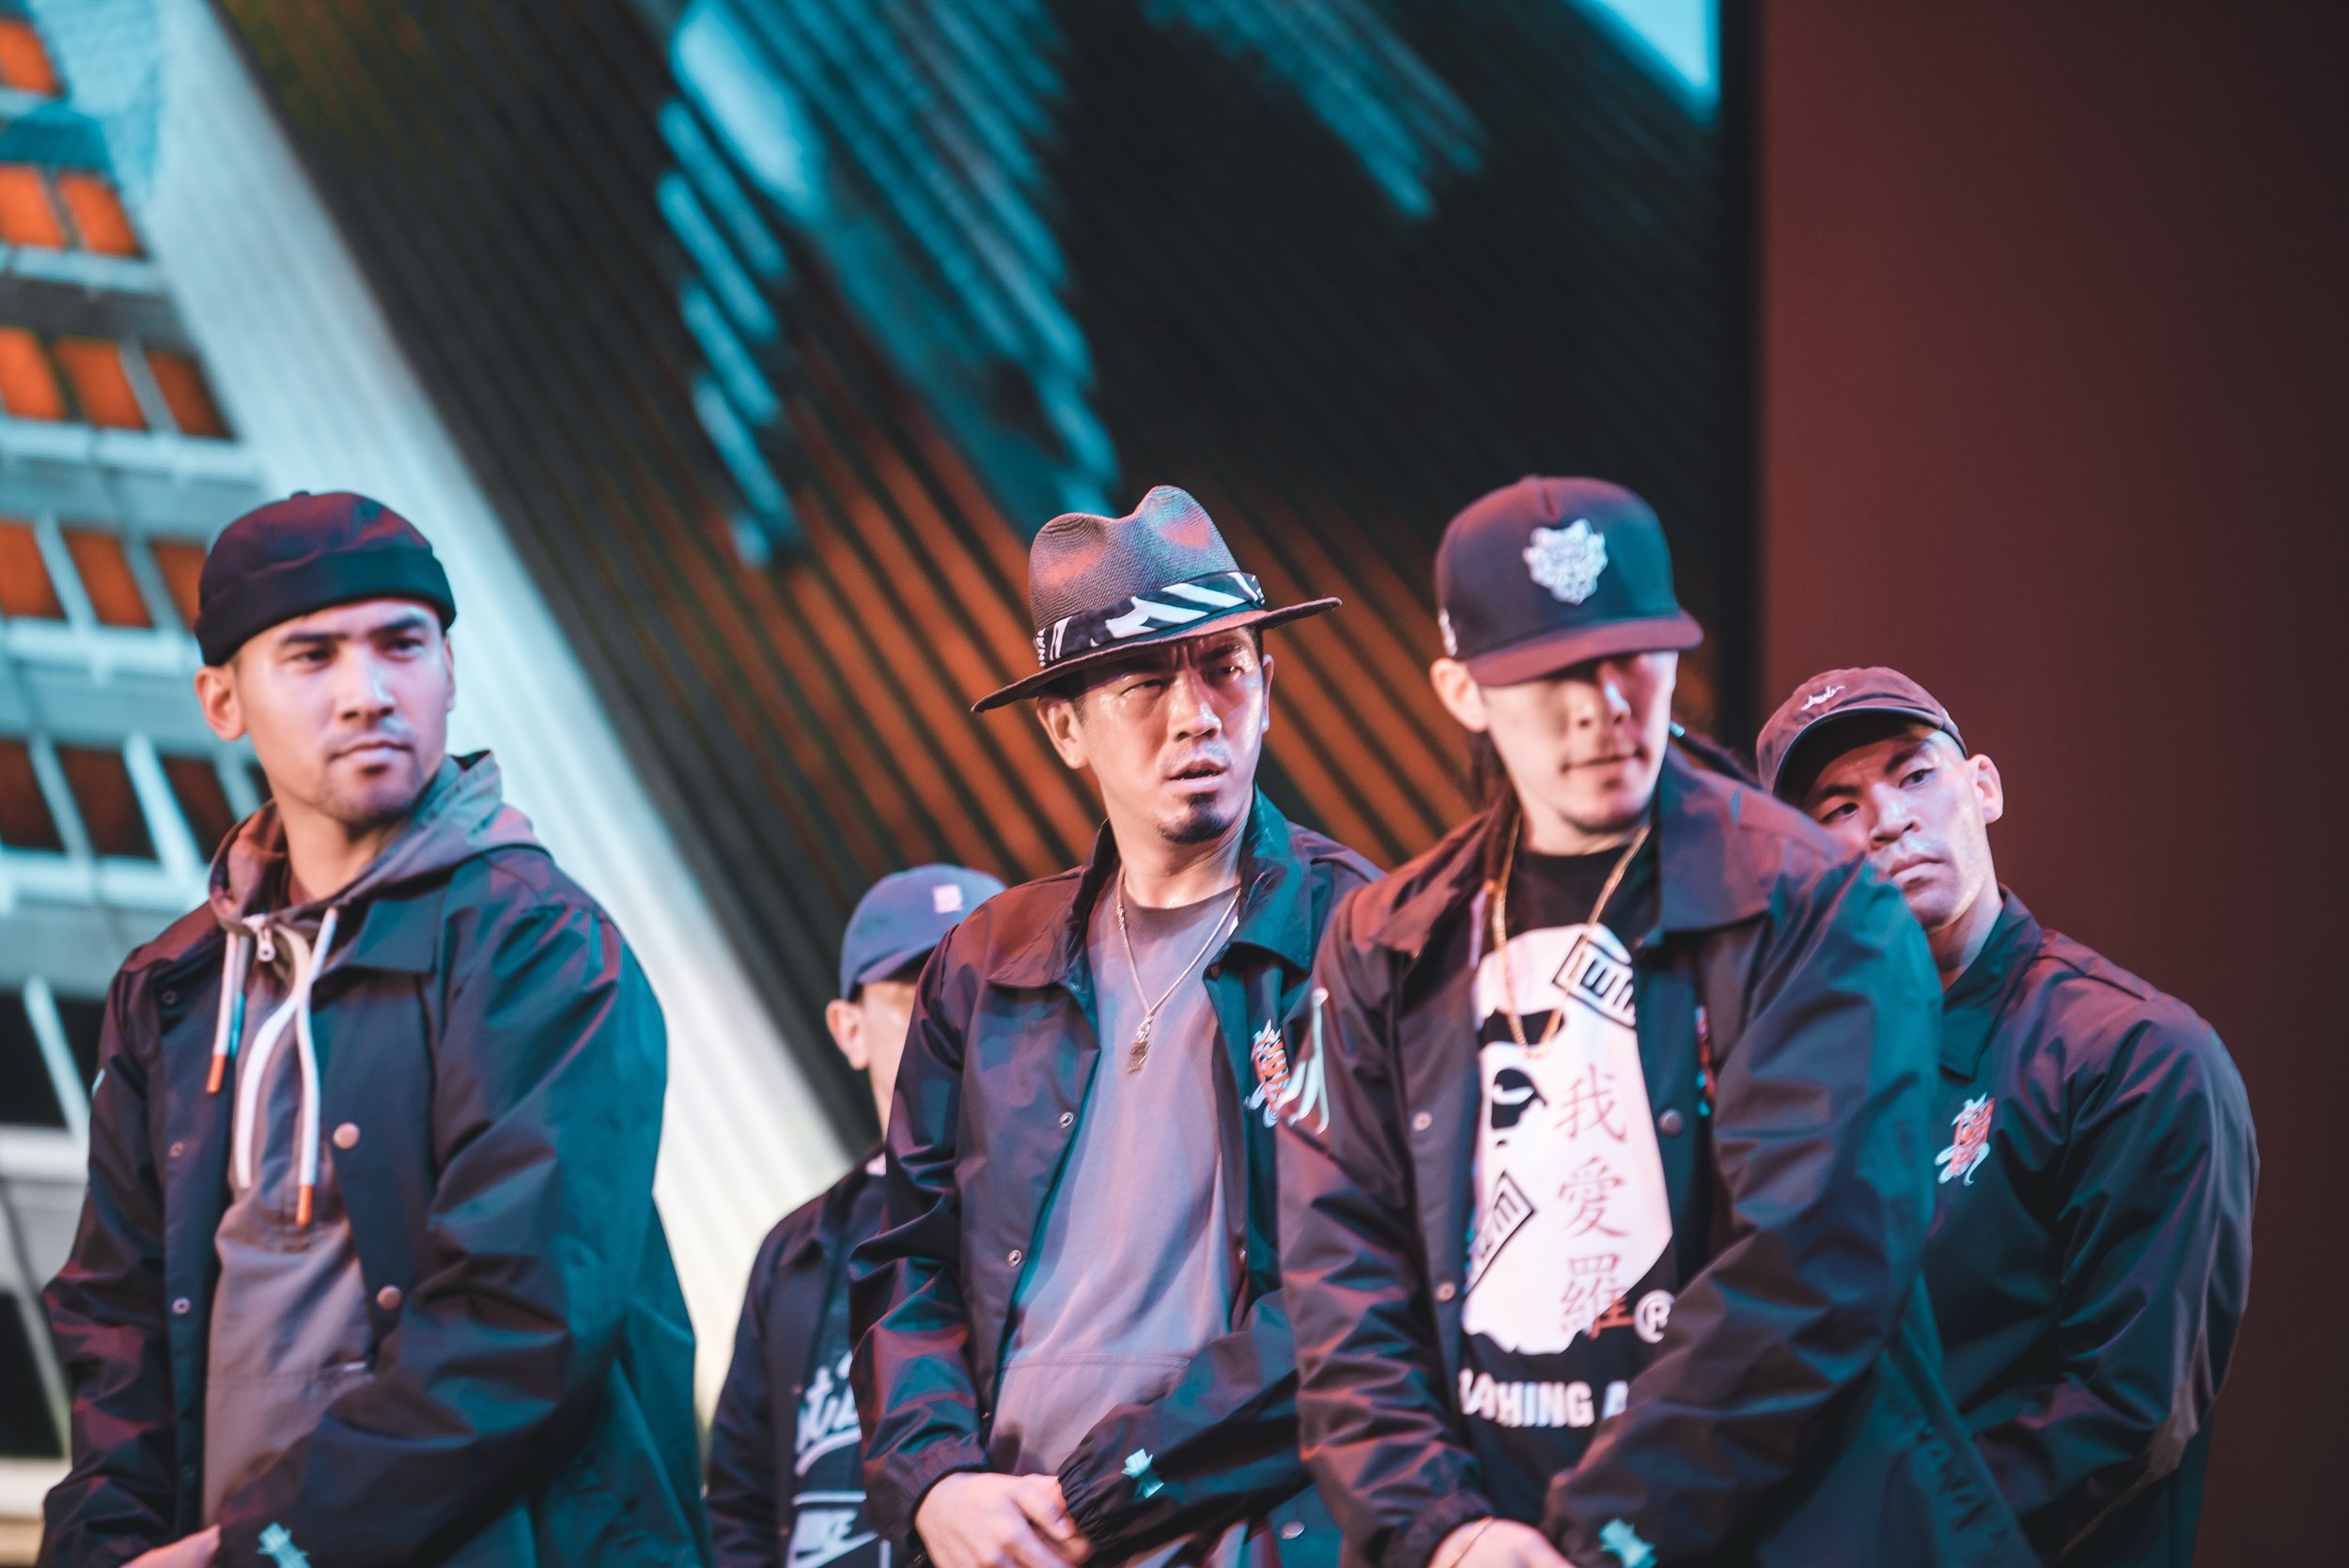 The [KINJAZ] onstage at Arena LA 2019